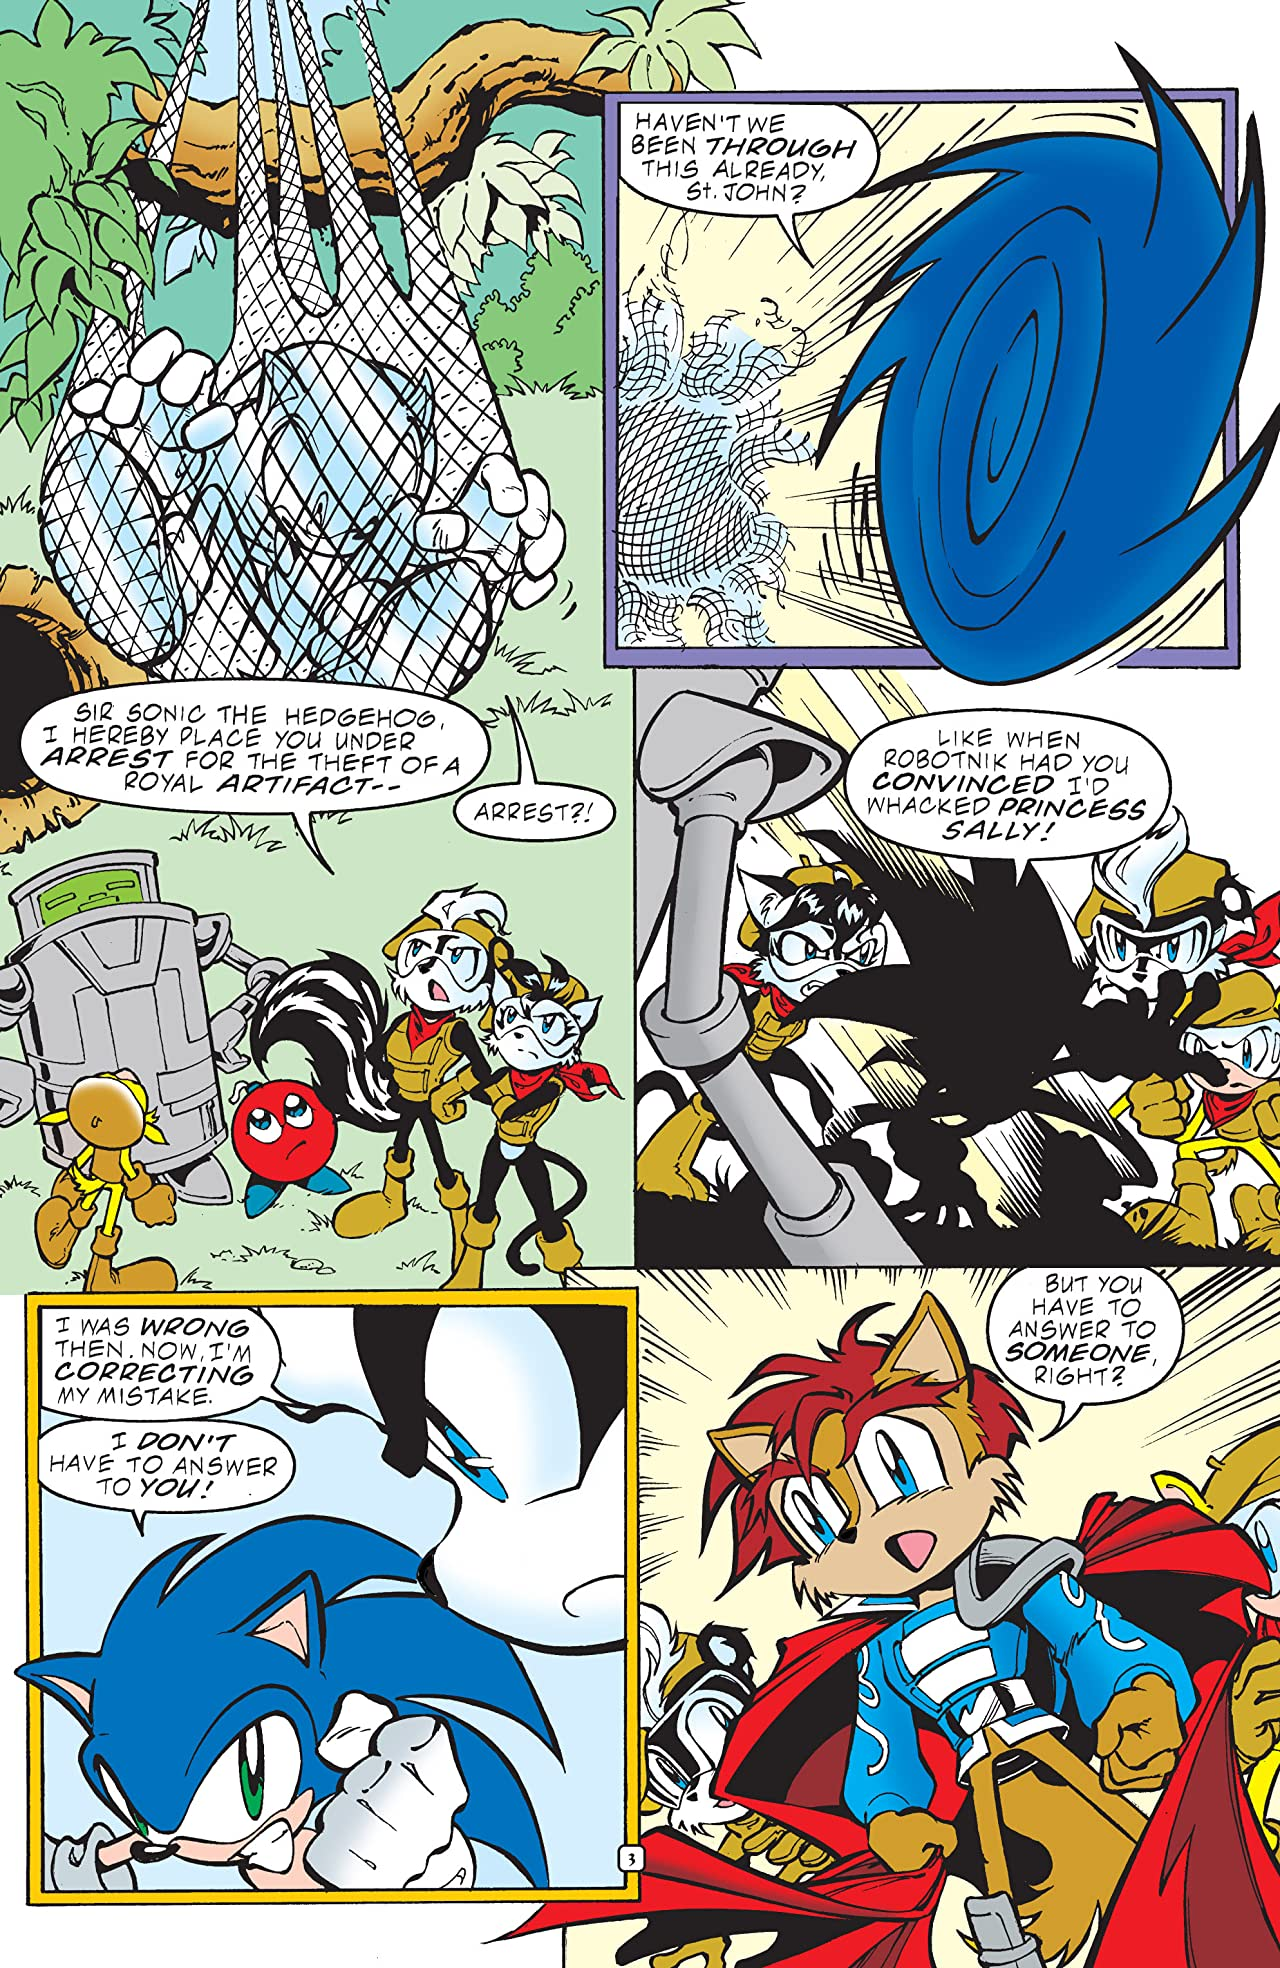 Sonic the Hedgehog #93